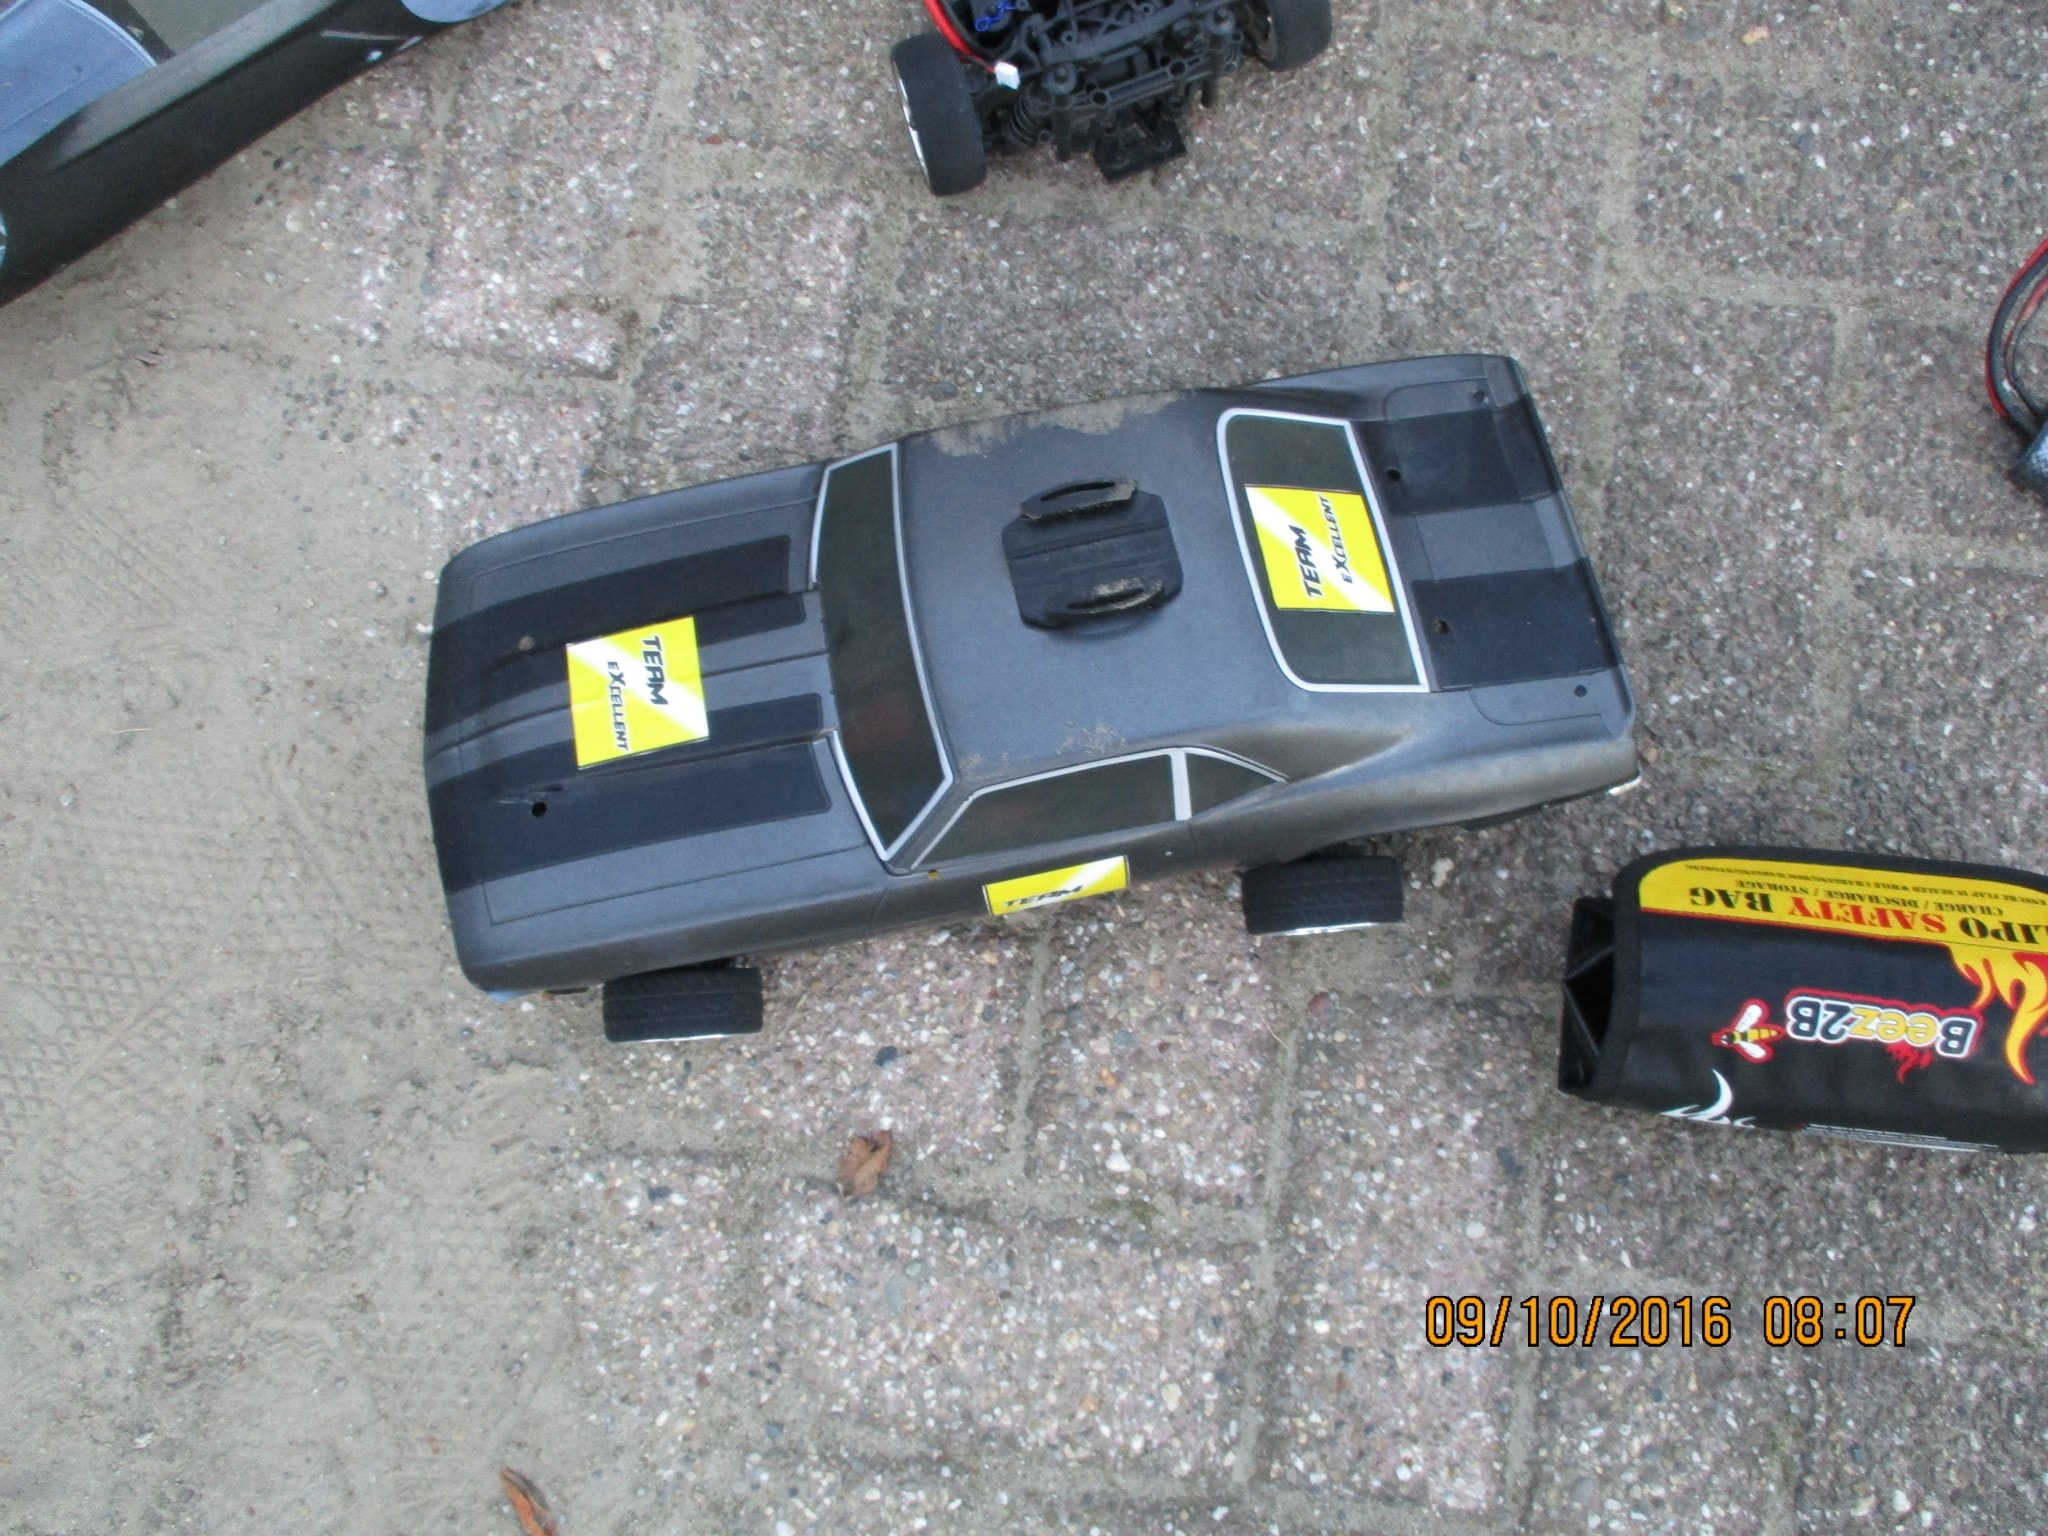 RCTech Battles Offers a Unique Look at R/C Racing